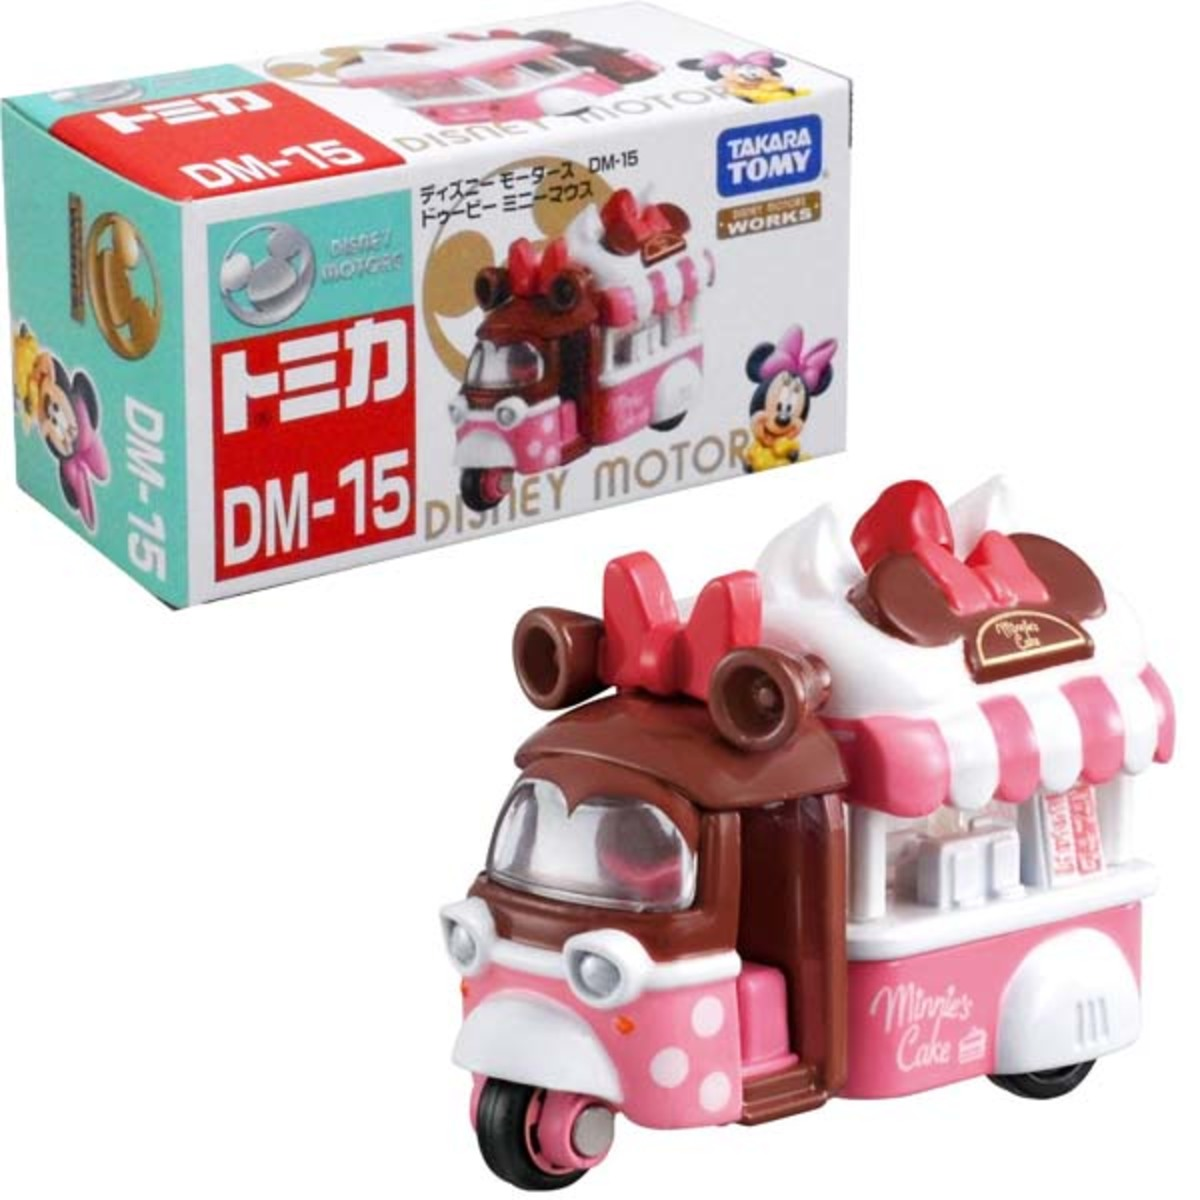 日本版Disney Motors DM-15 米妮篤篤(894360)